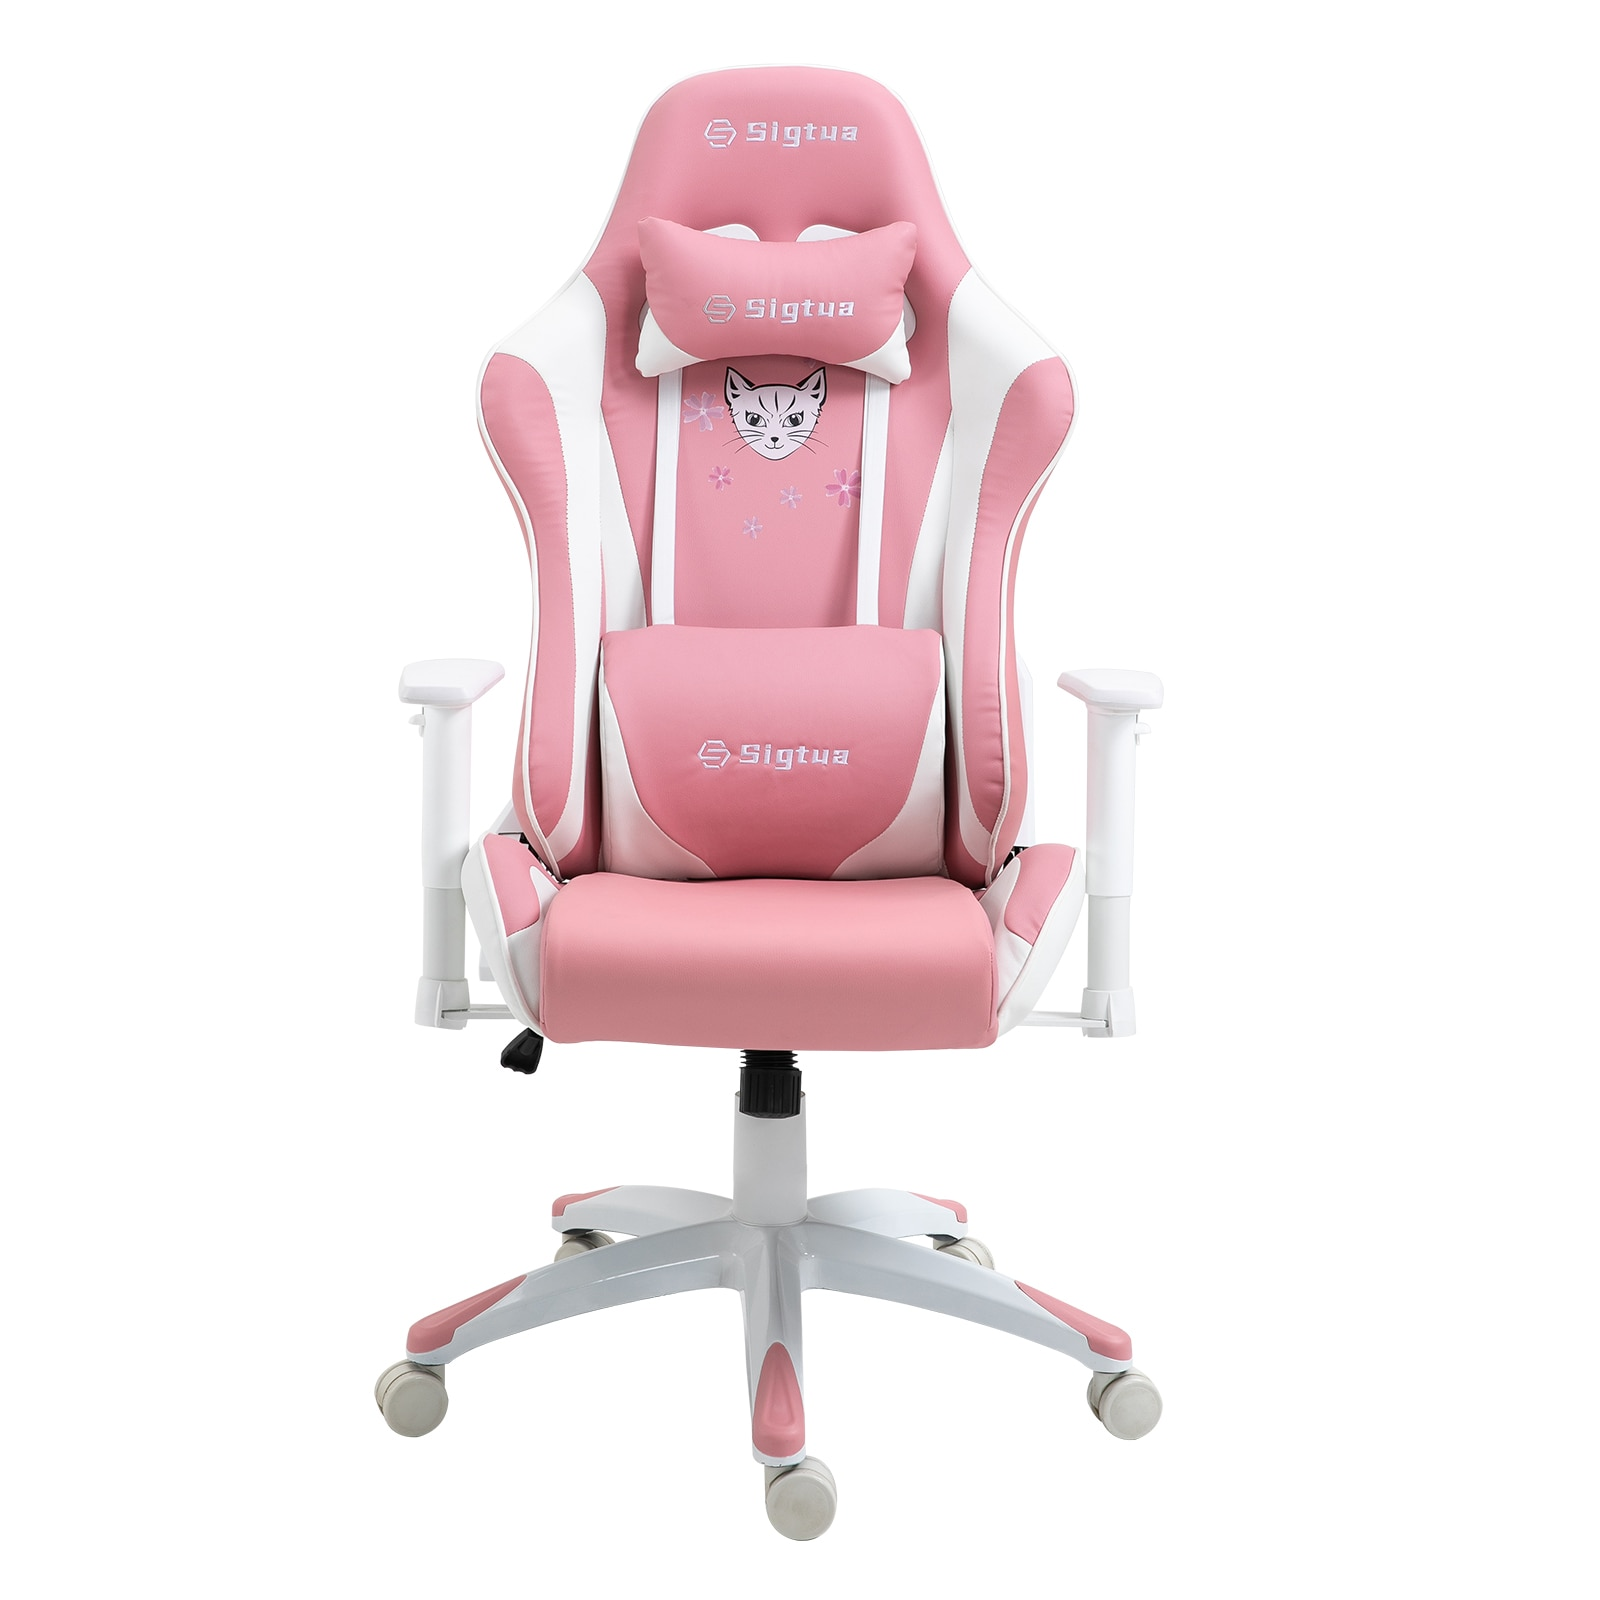 H428ad07f00dc4429ab54e37c76ea6b334 - Sigtua Pink Gaming Office Chair Height-adjustable Armrests Computer Chair Ergonomic Swivel Executive Chair with High Backrest